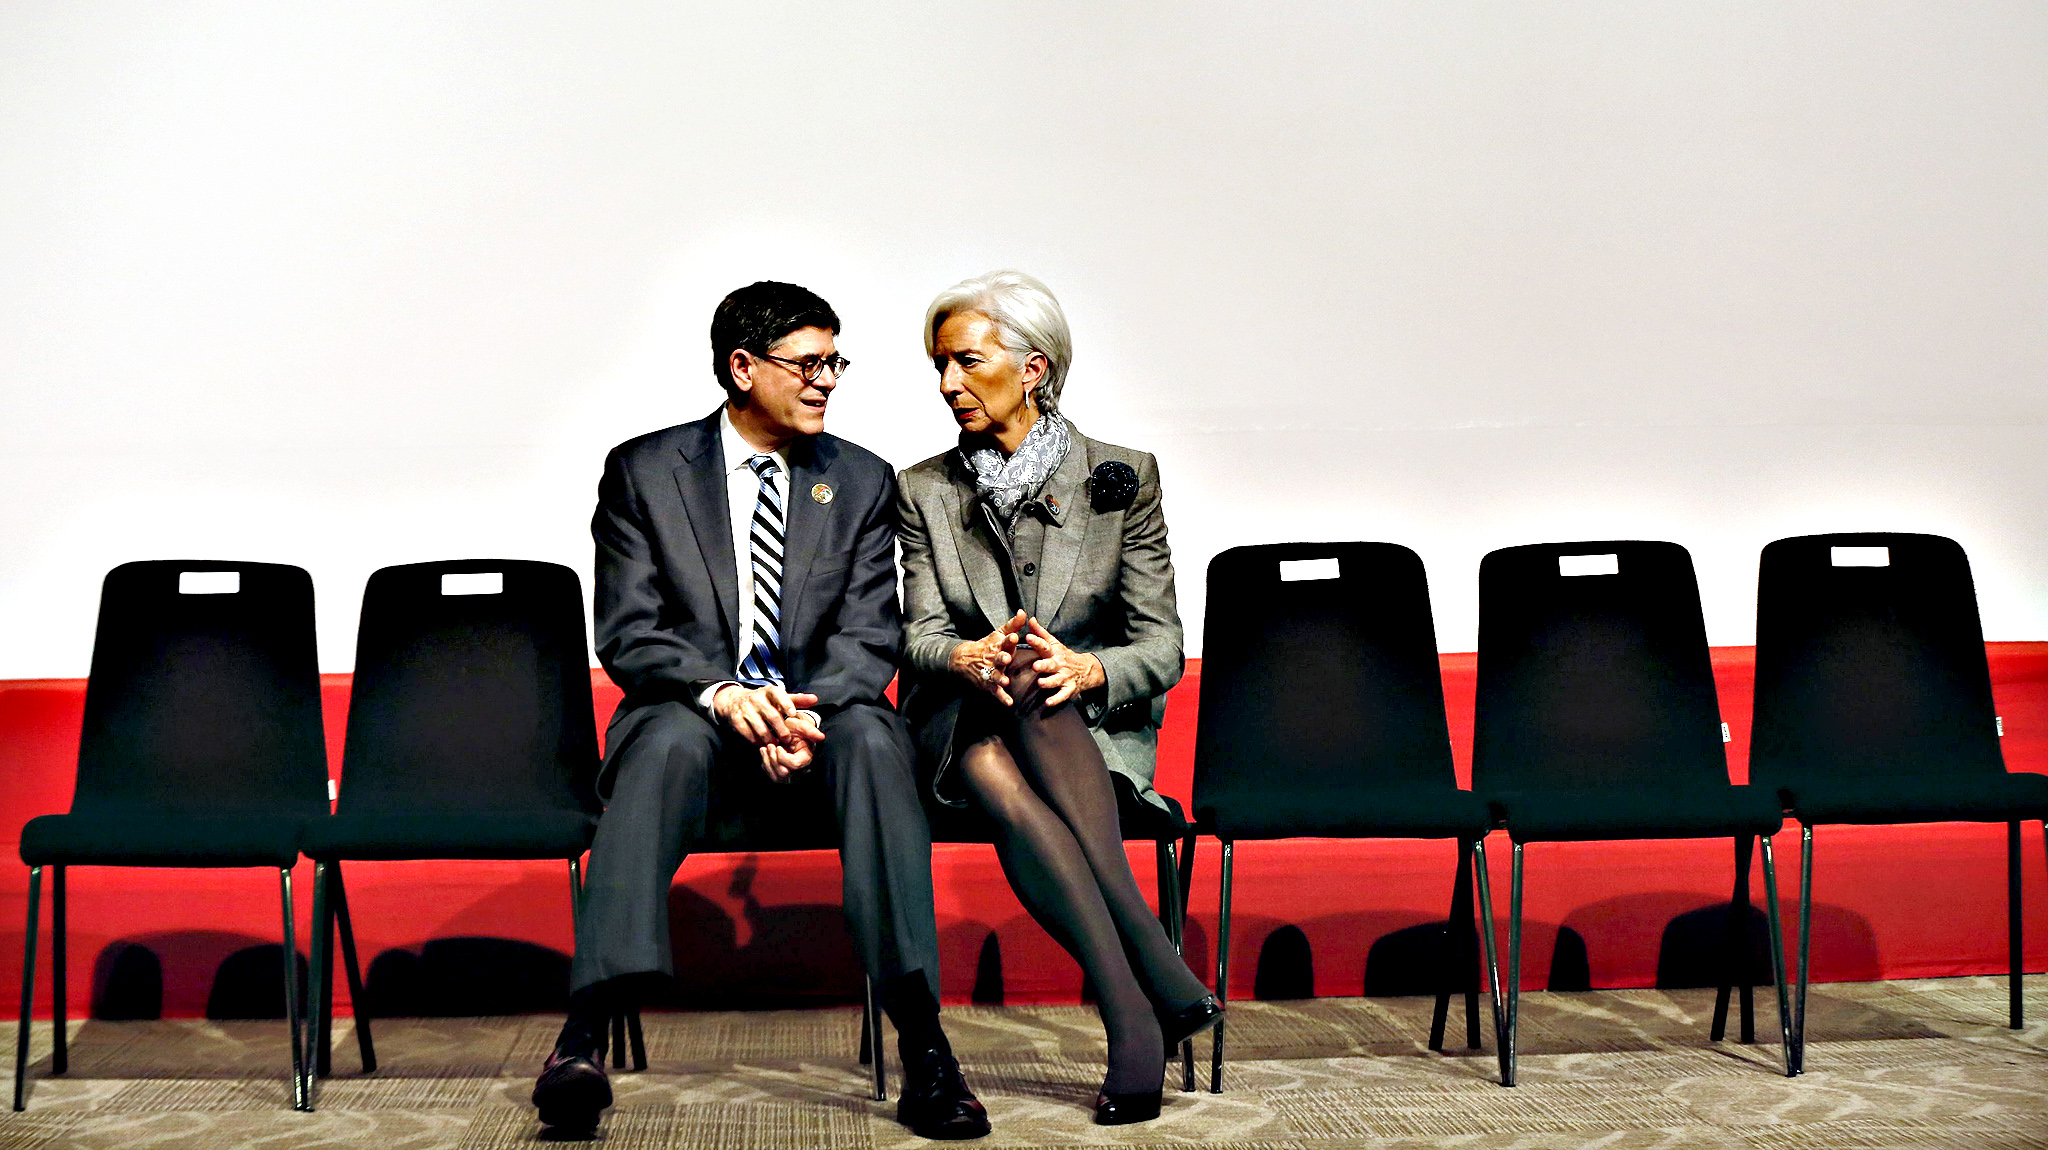 Managing Director of the International Monetary Fund Christine Lagarde chats with US Treasury Secretary Jack Lew after the family photo during the G20 meeting of Finance Ministers and Central Bank Governor at the finance ministry in Istanbul, Turkey, 10 February 2015.